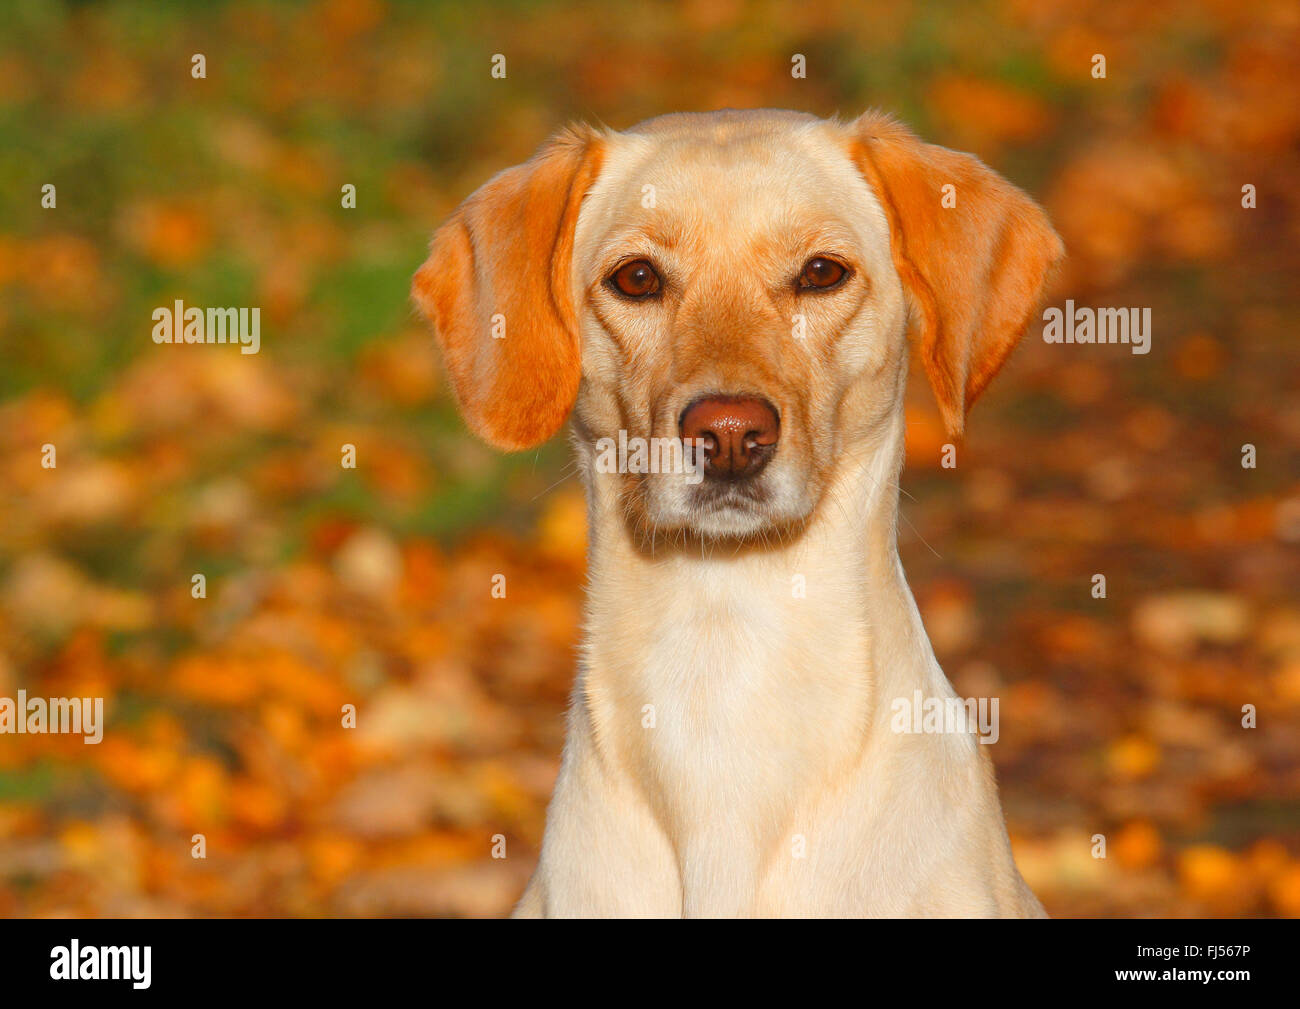 mixed breed dog (Canis lupus f. familiaris), Labrador Magyar Vizsla mixed breed dog sitting in autumn foliage, Germany - Stock Image